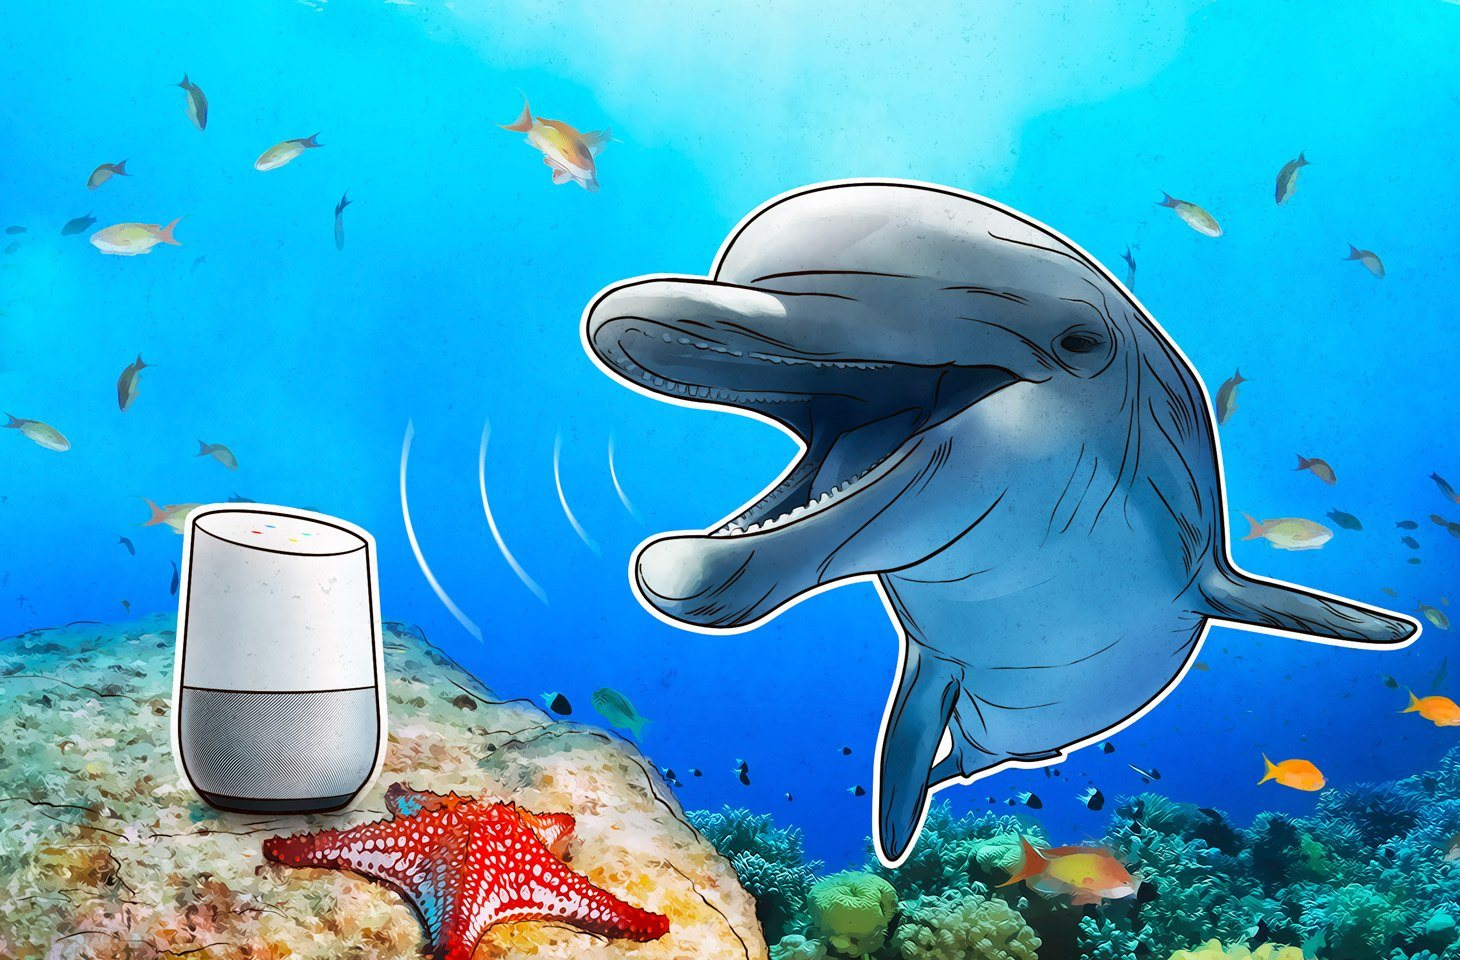 Ultrasound and noise attacks on voice assistants | Kaspersky